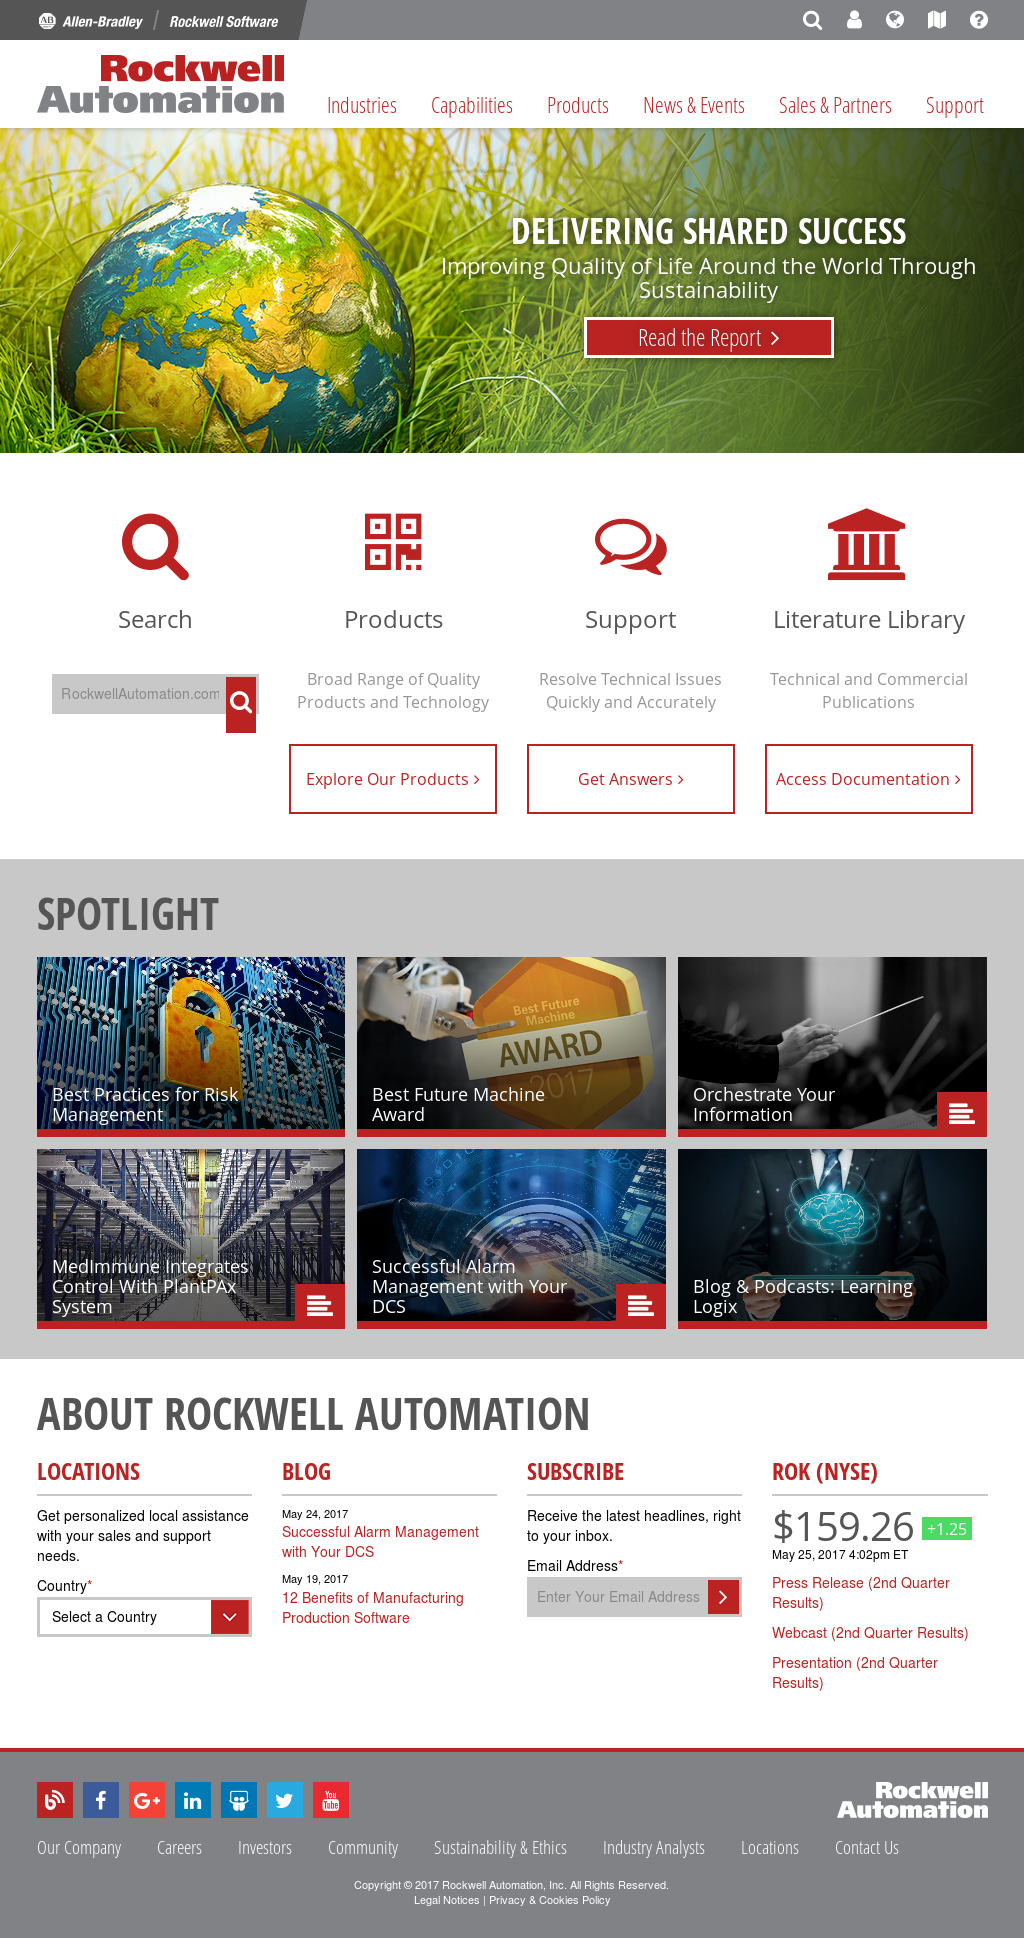 Rockwell Automation Competitors, Revenue and Employees